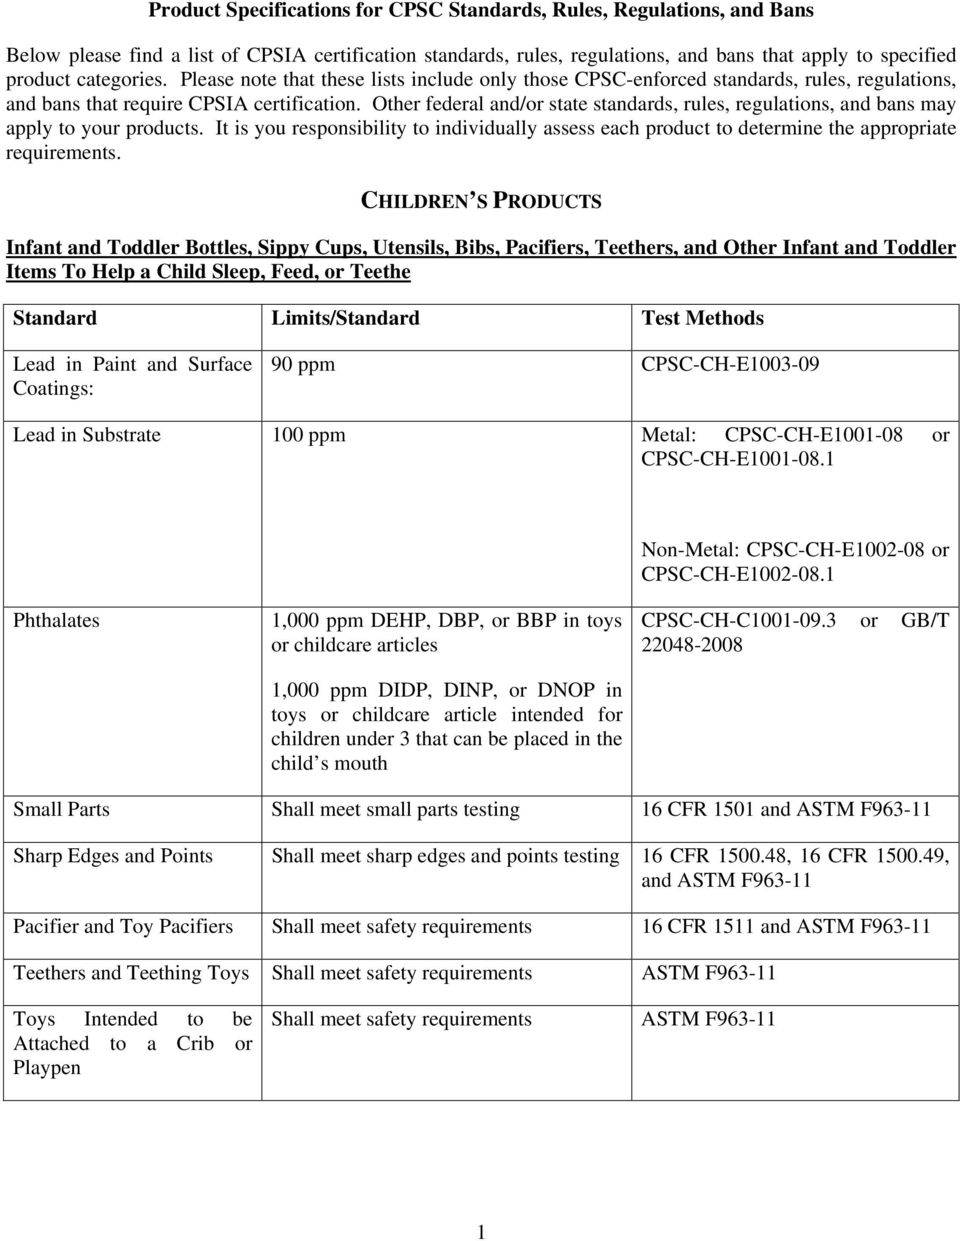 Product Specifications For Cpsc Standards Rules Regulations And